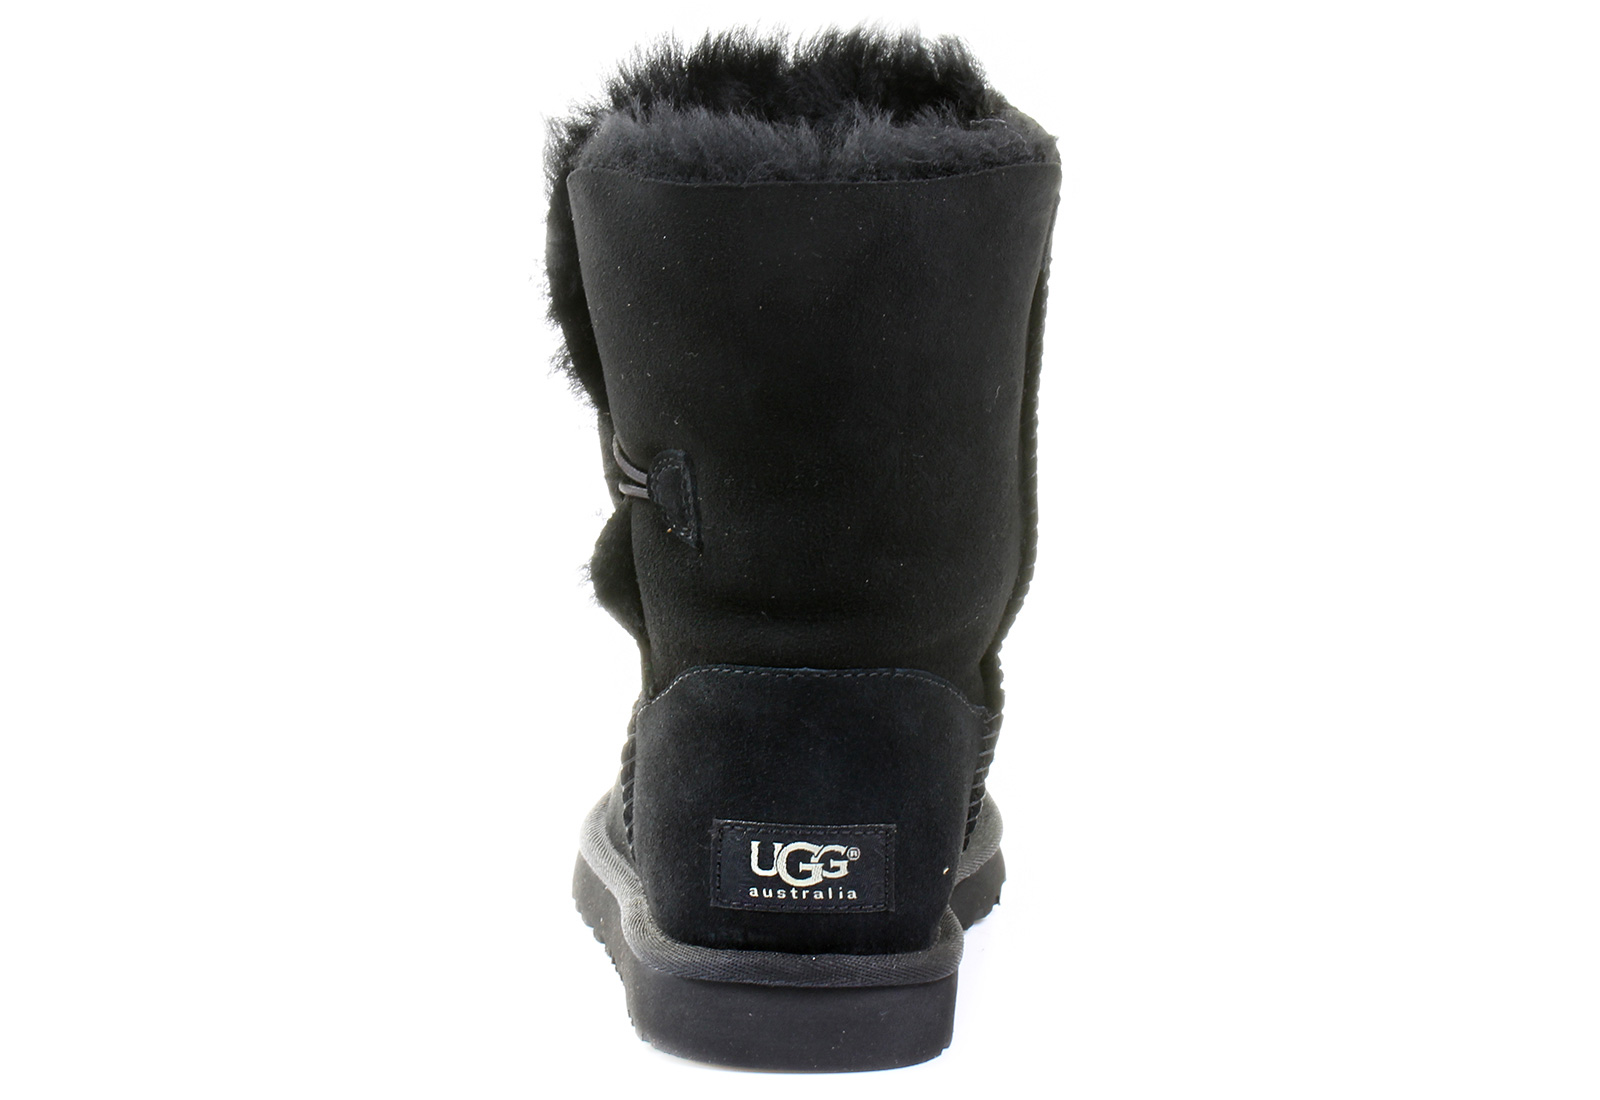 2310981758e Ugg Australia Lo Pro Perforated Shaft Boots - cheap watches mgc-gas.com